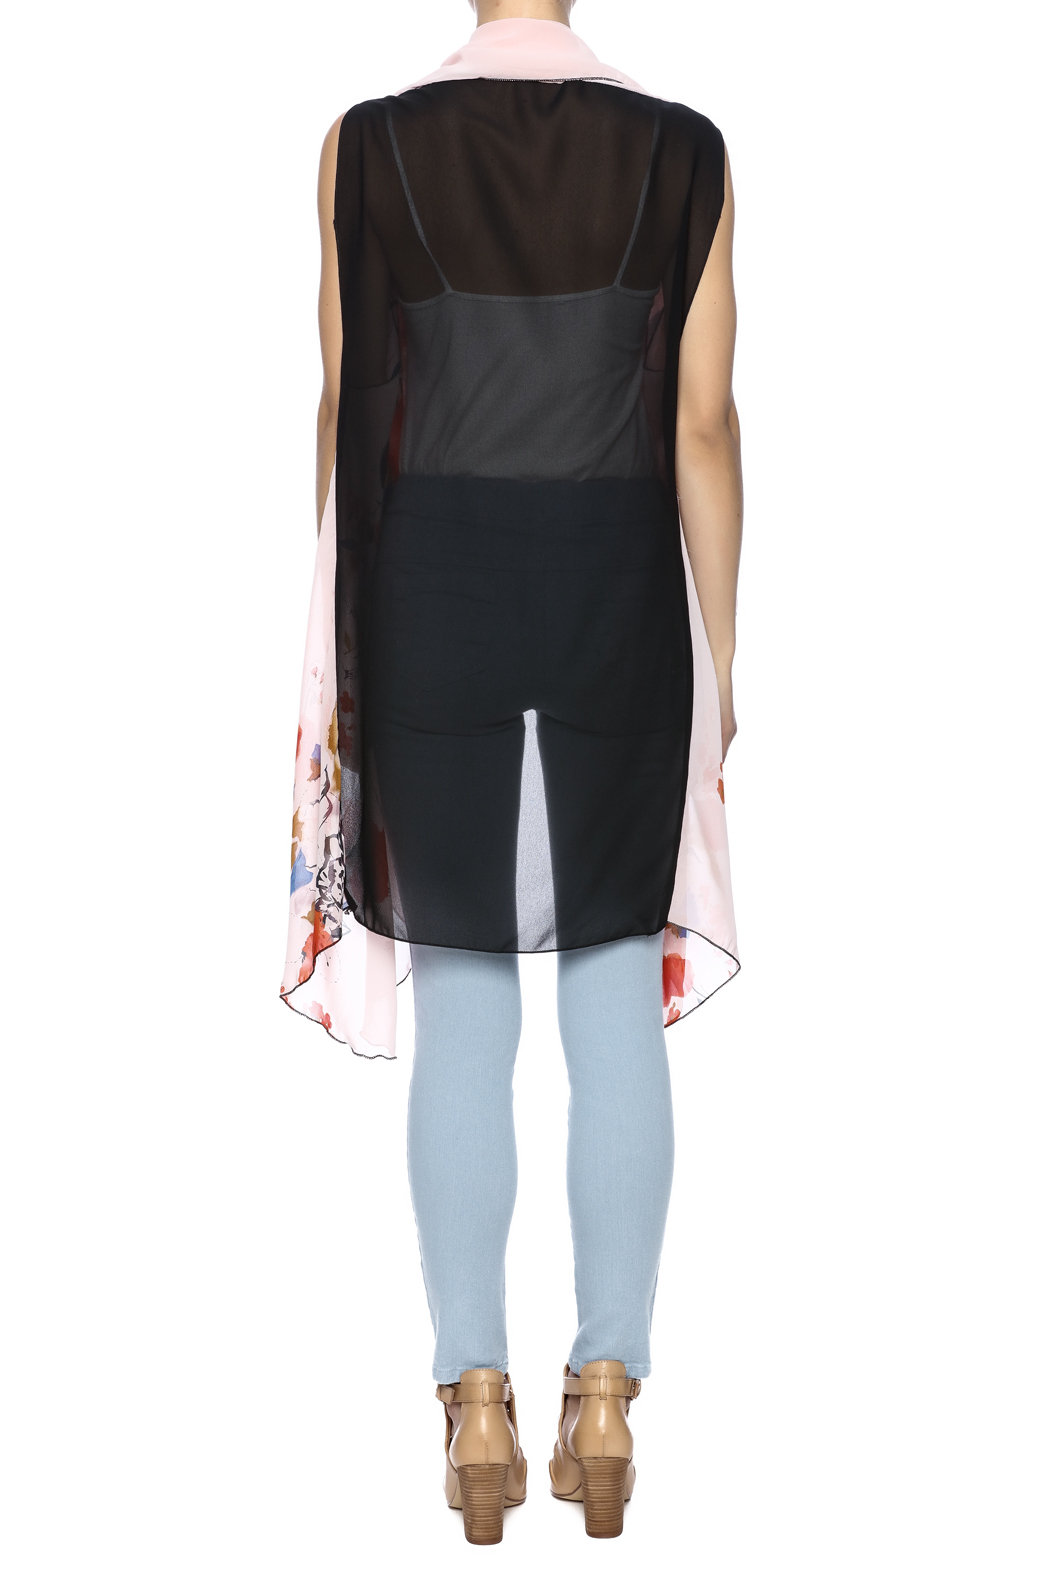 Two Chic Cherry Blossom Vest - Back Cropped Image